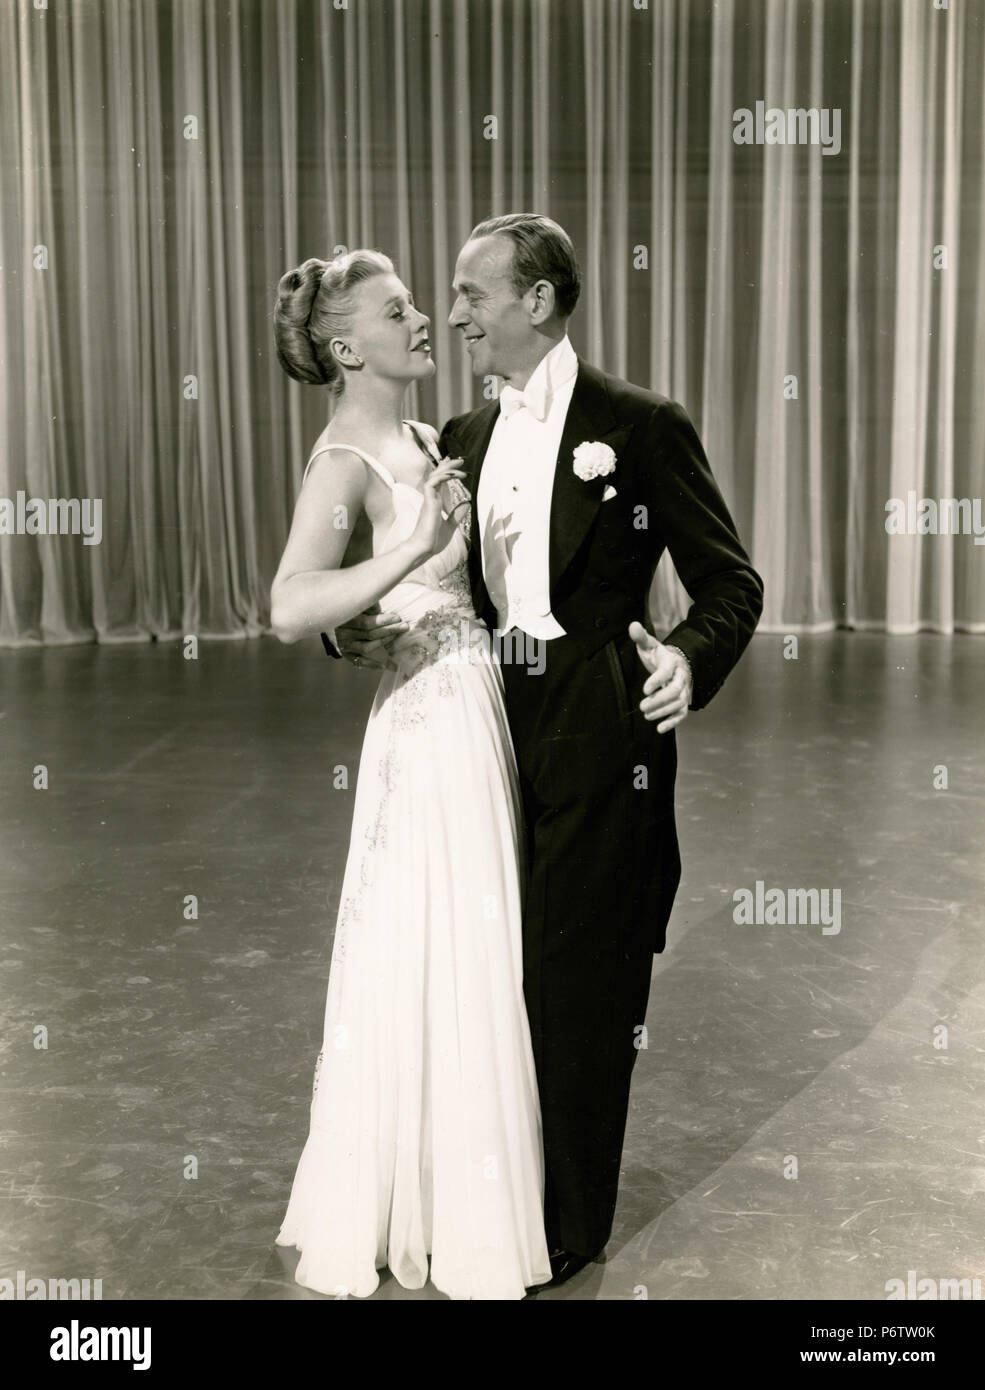 Fred Astaire And Ginger High Resolution Stock Photography And Images Alamy